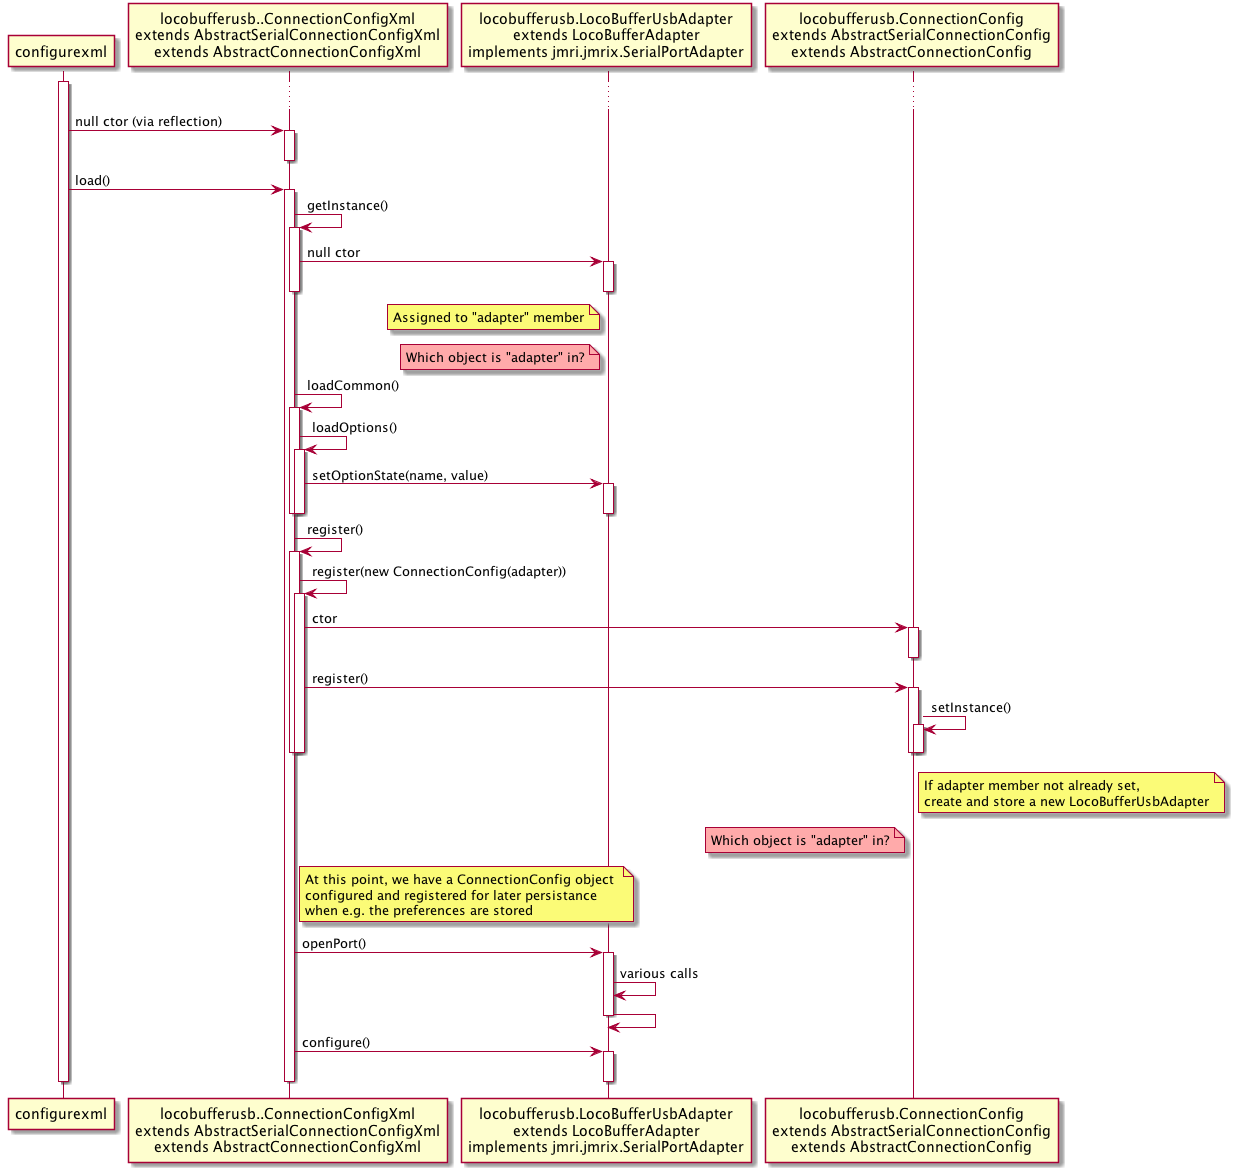 loconet wiring diagrams wiring library Wiring House Home \u003cconnection xmlns\u003d\